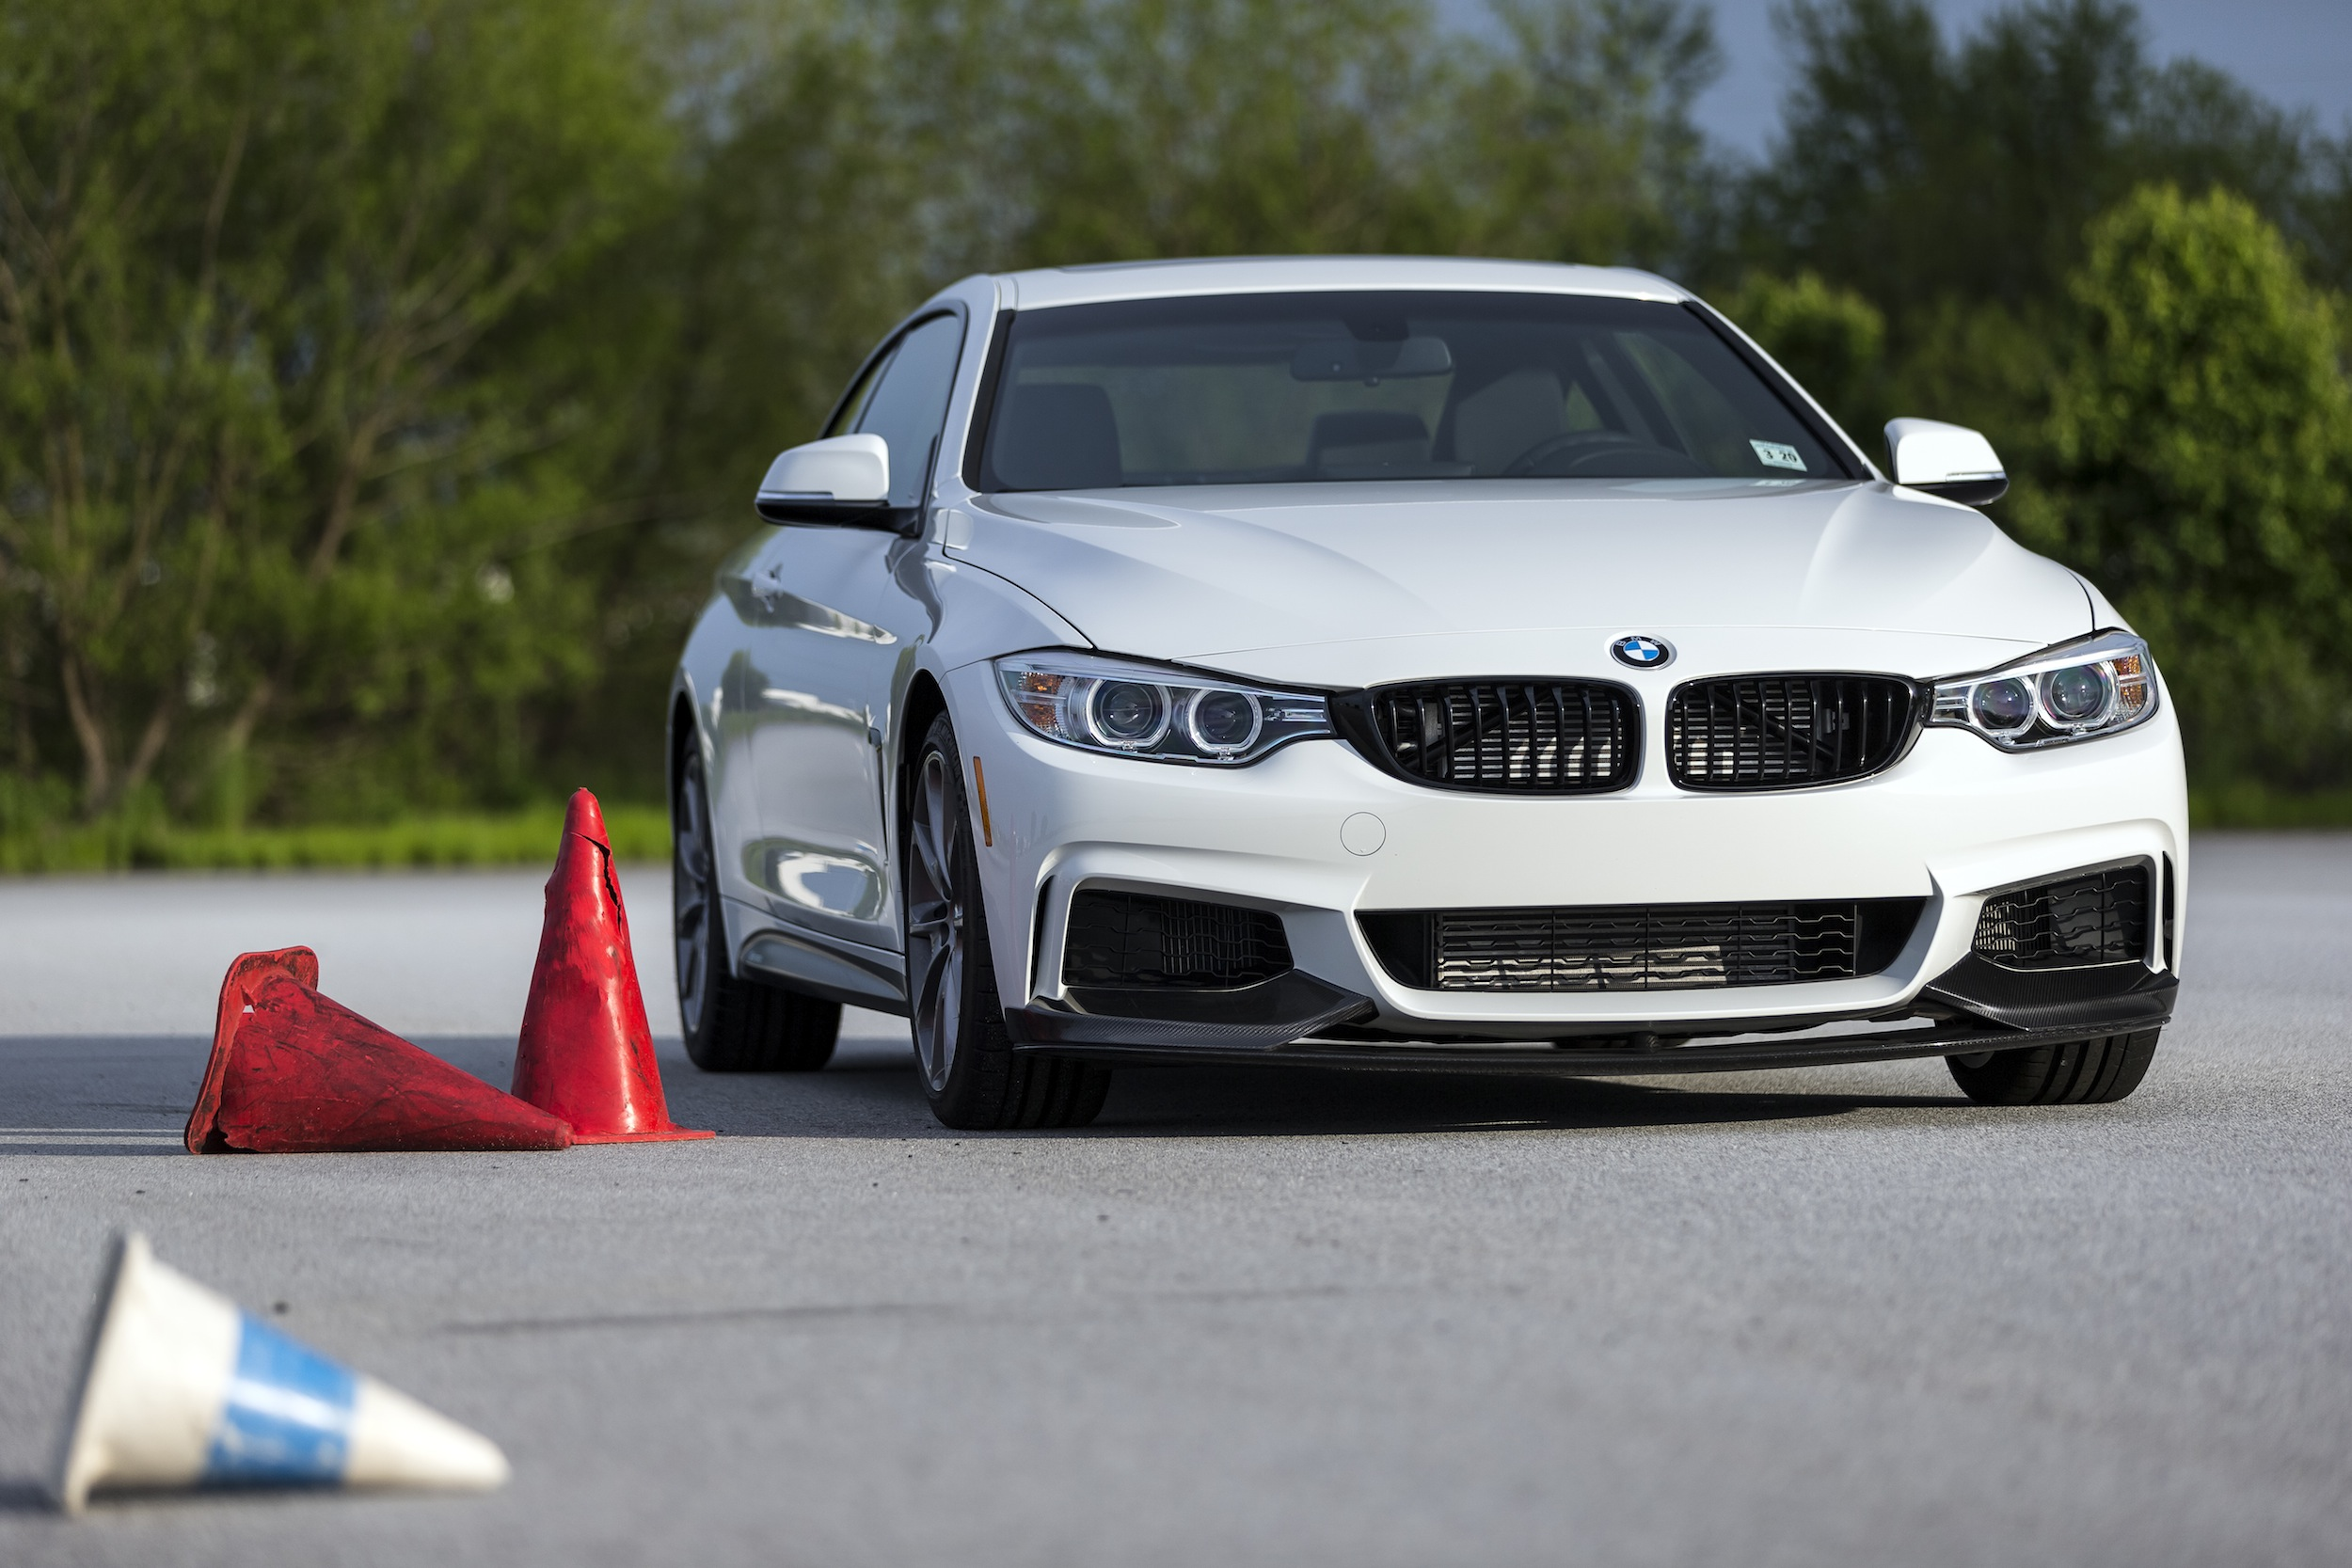 Bmw 435i zhp coupe 2016 pictures information amp specs -  435i Coupe Zhp Edition